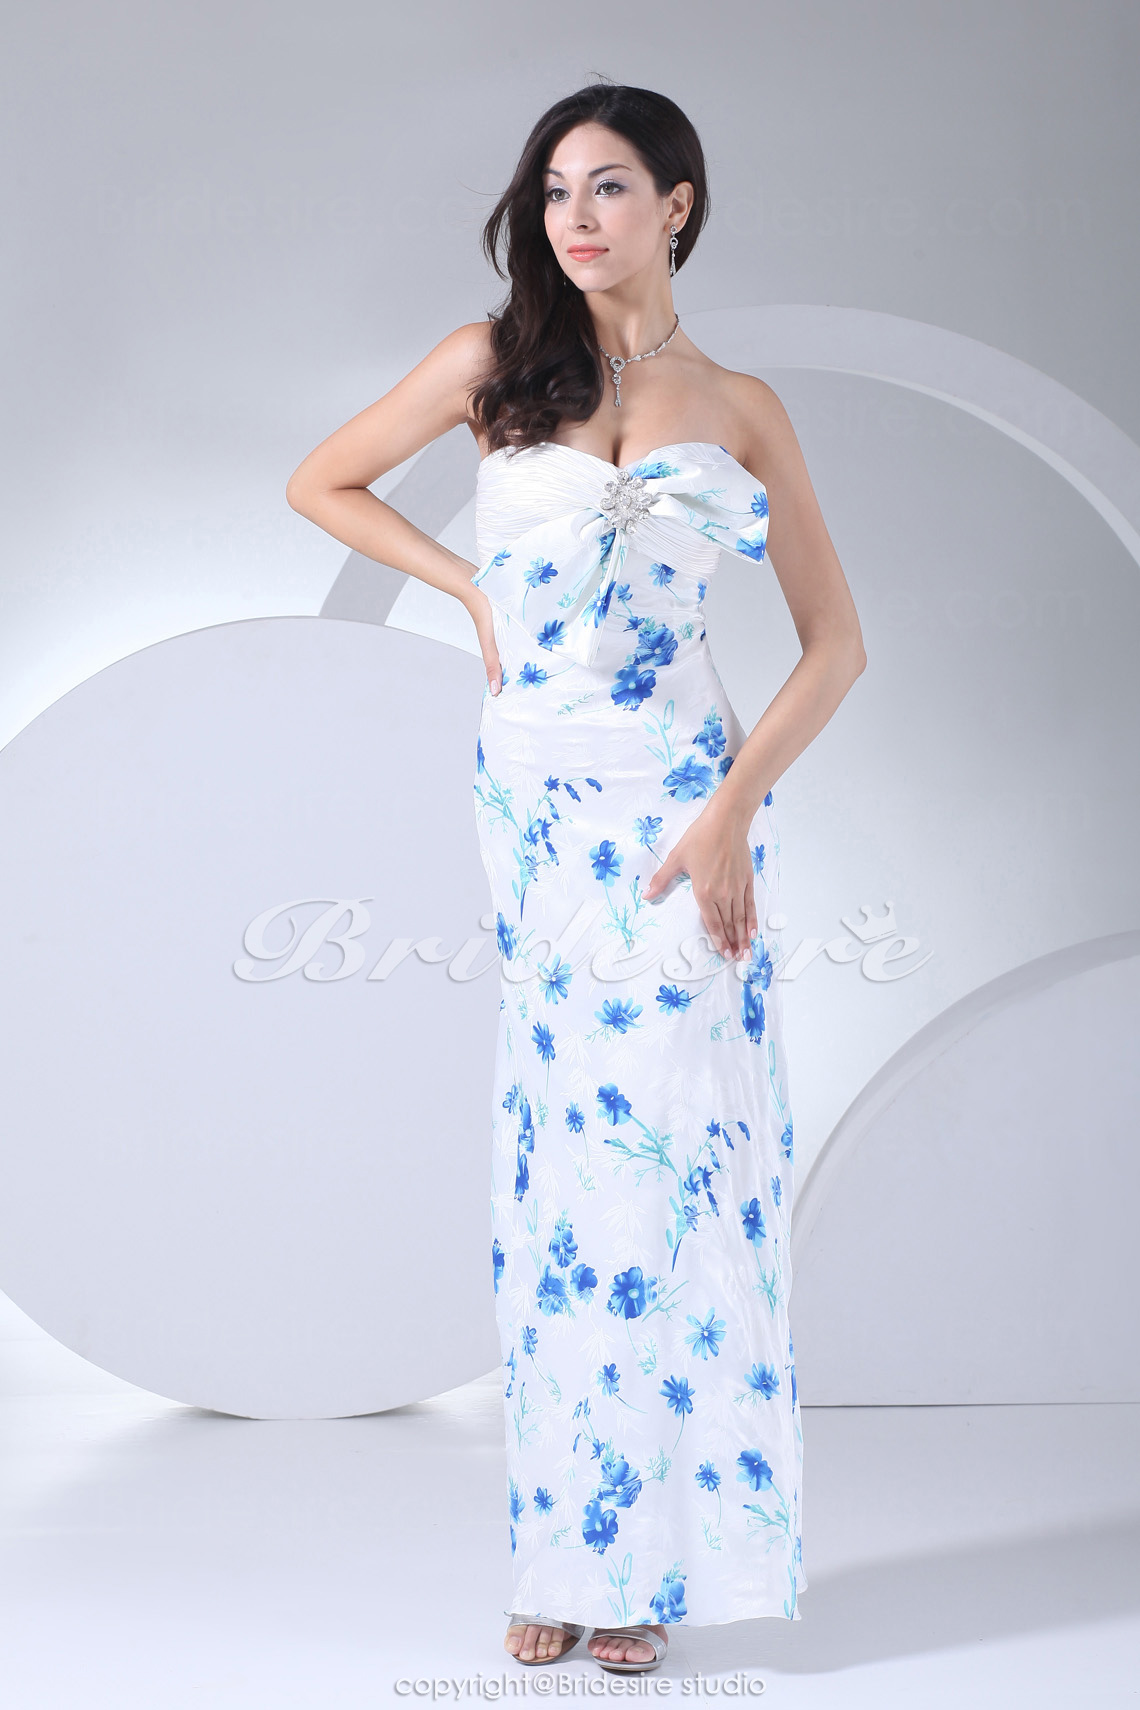 Sheath/Column Sweetheart Floor-length Sleeveless Stretch Satin Dress